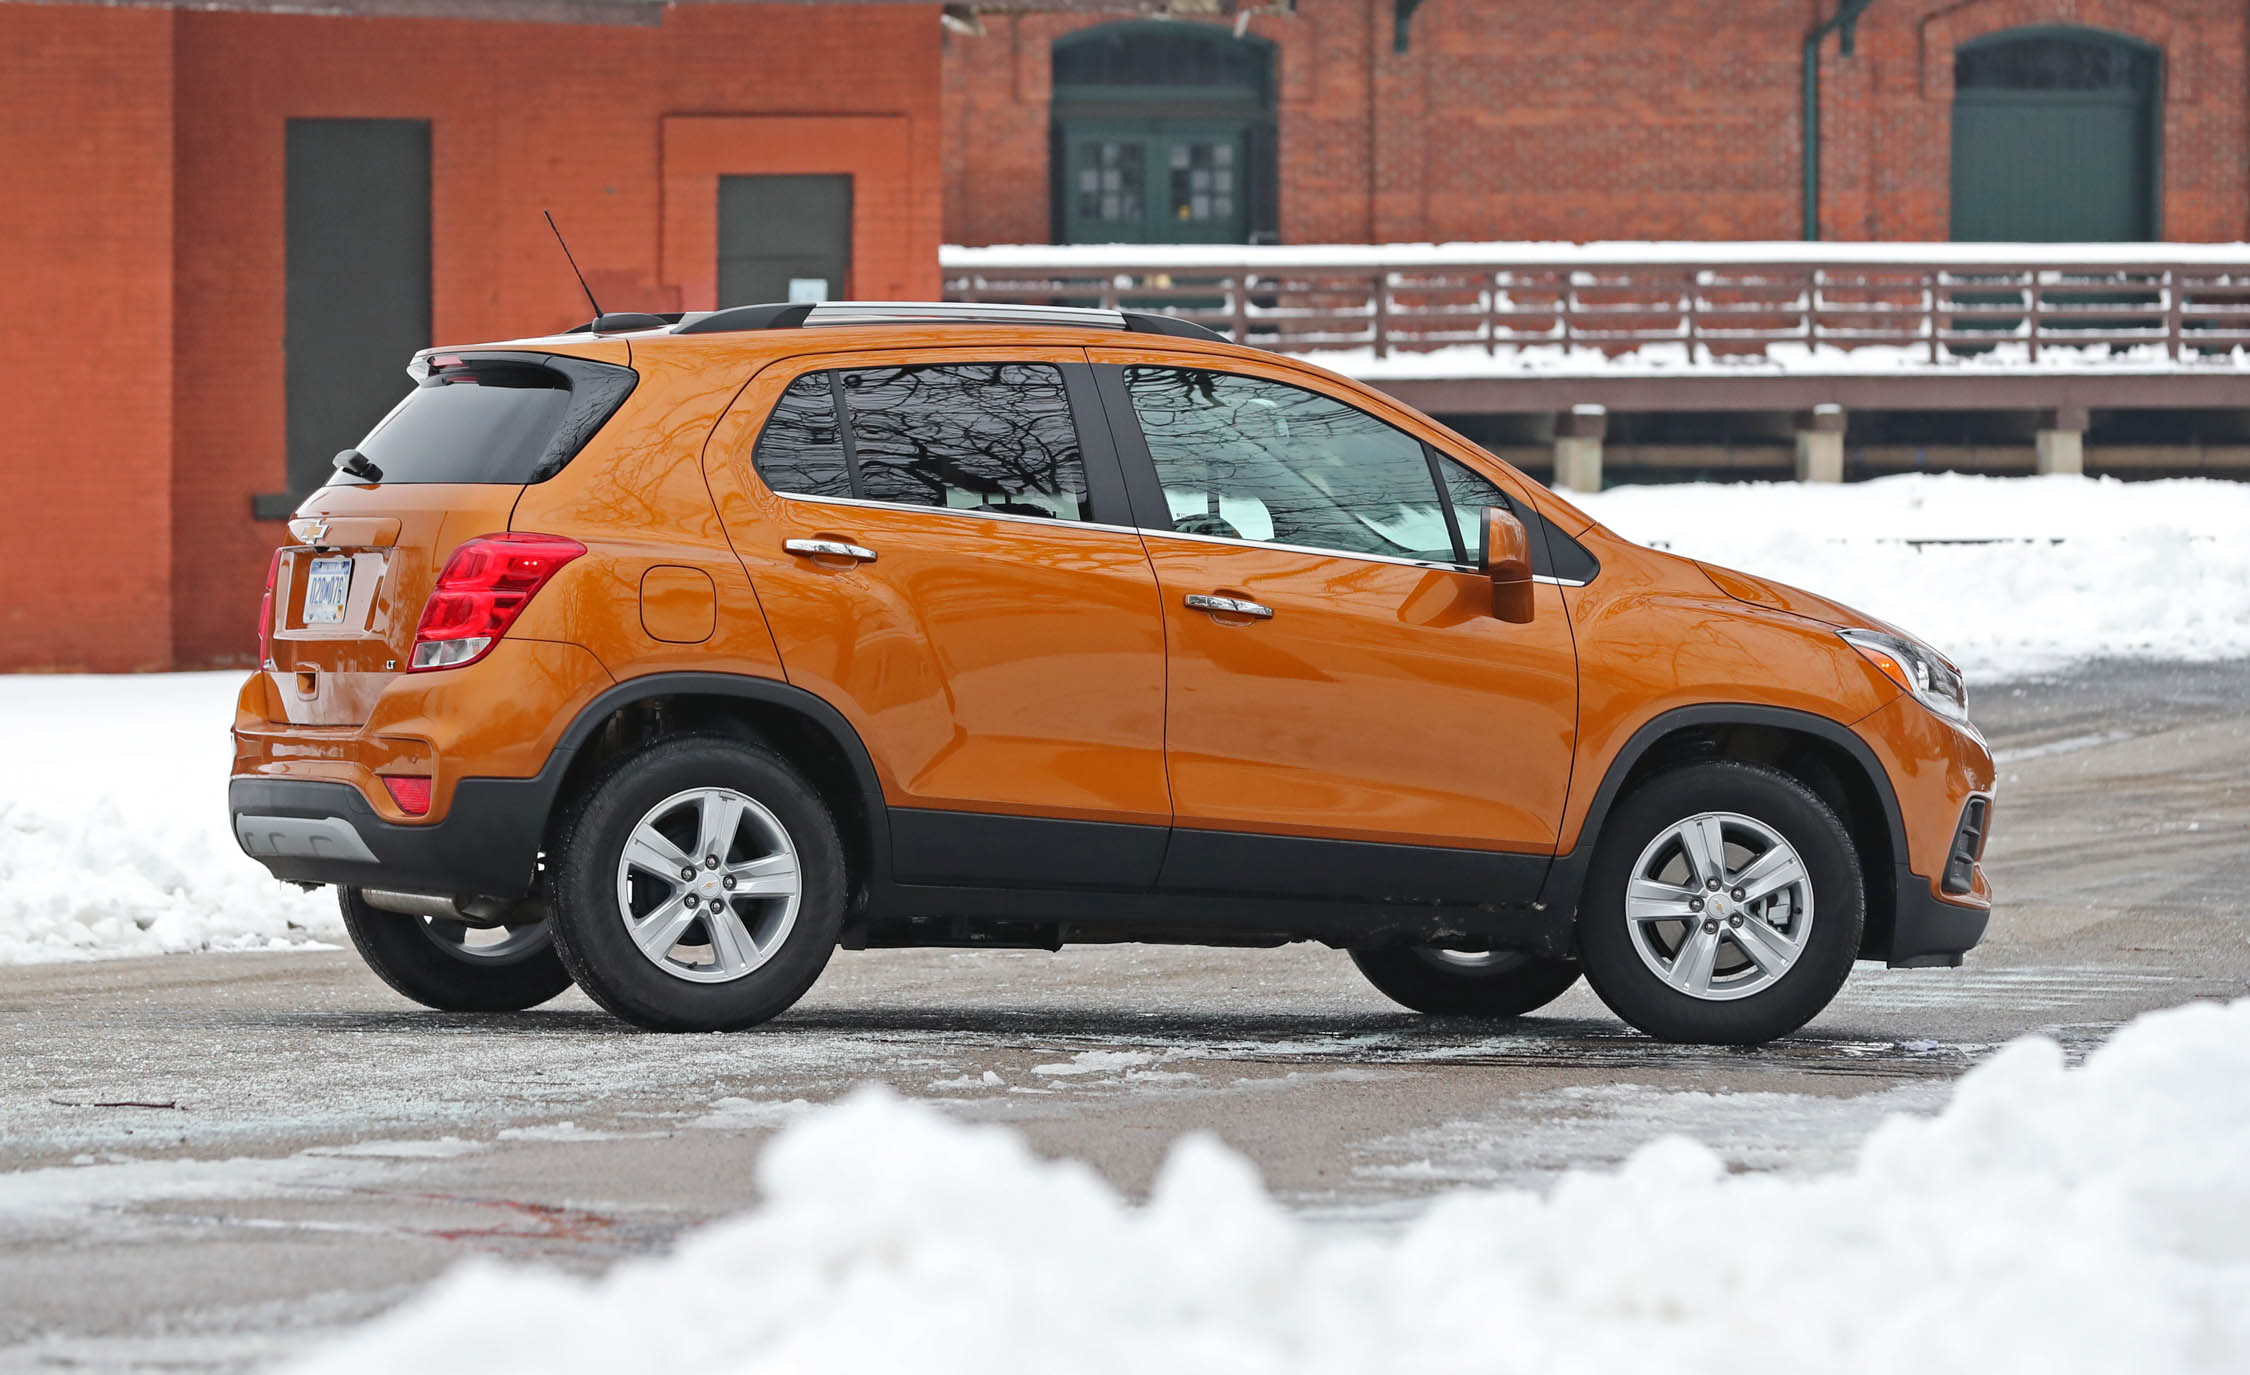 2017 Chevrolet Trax Exterior Side And Rear (Photo 7 of 47)